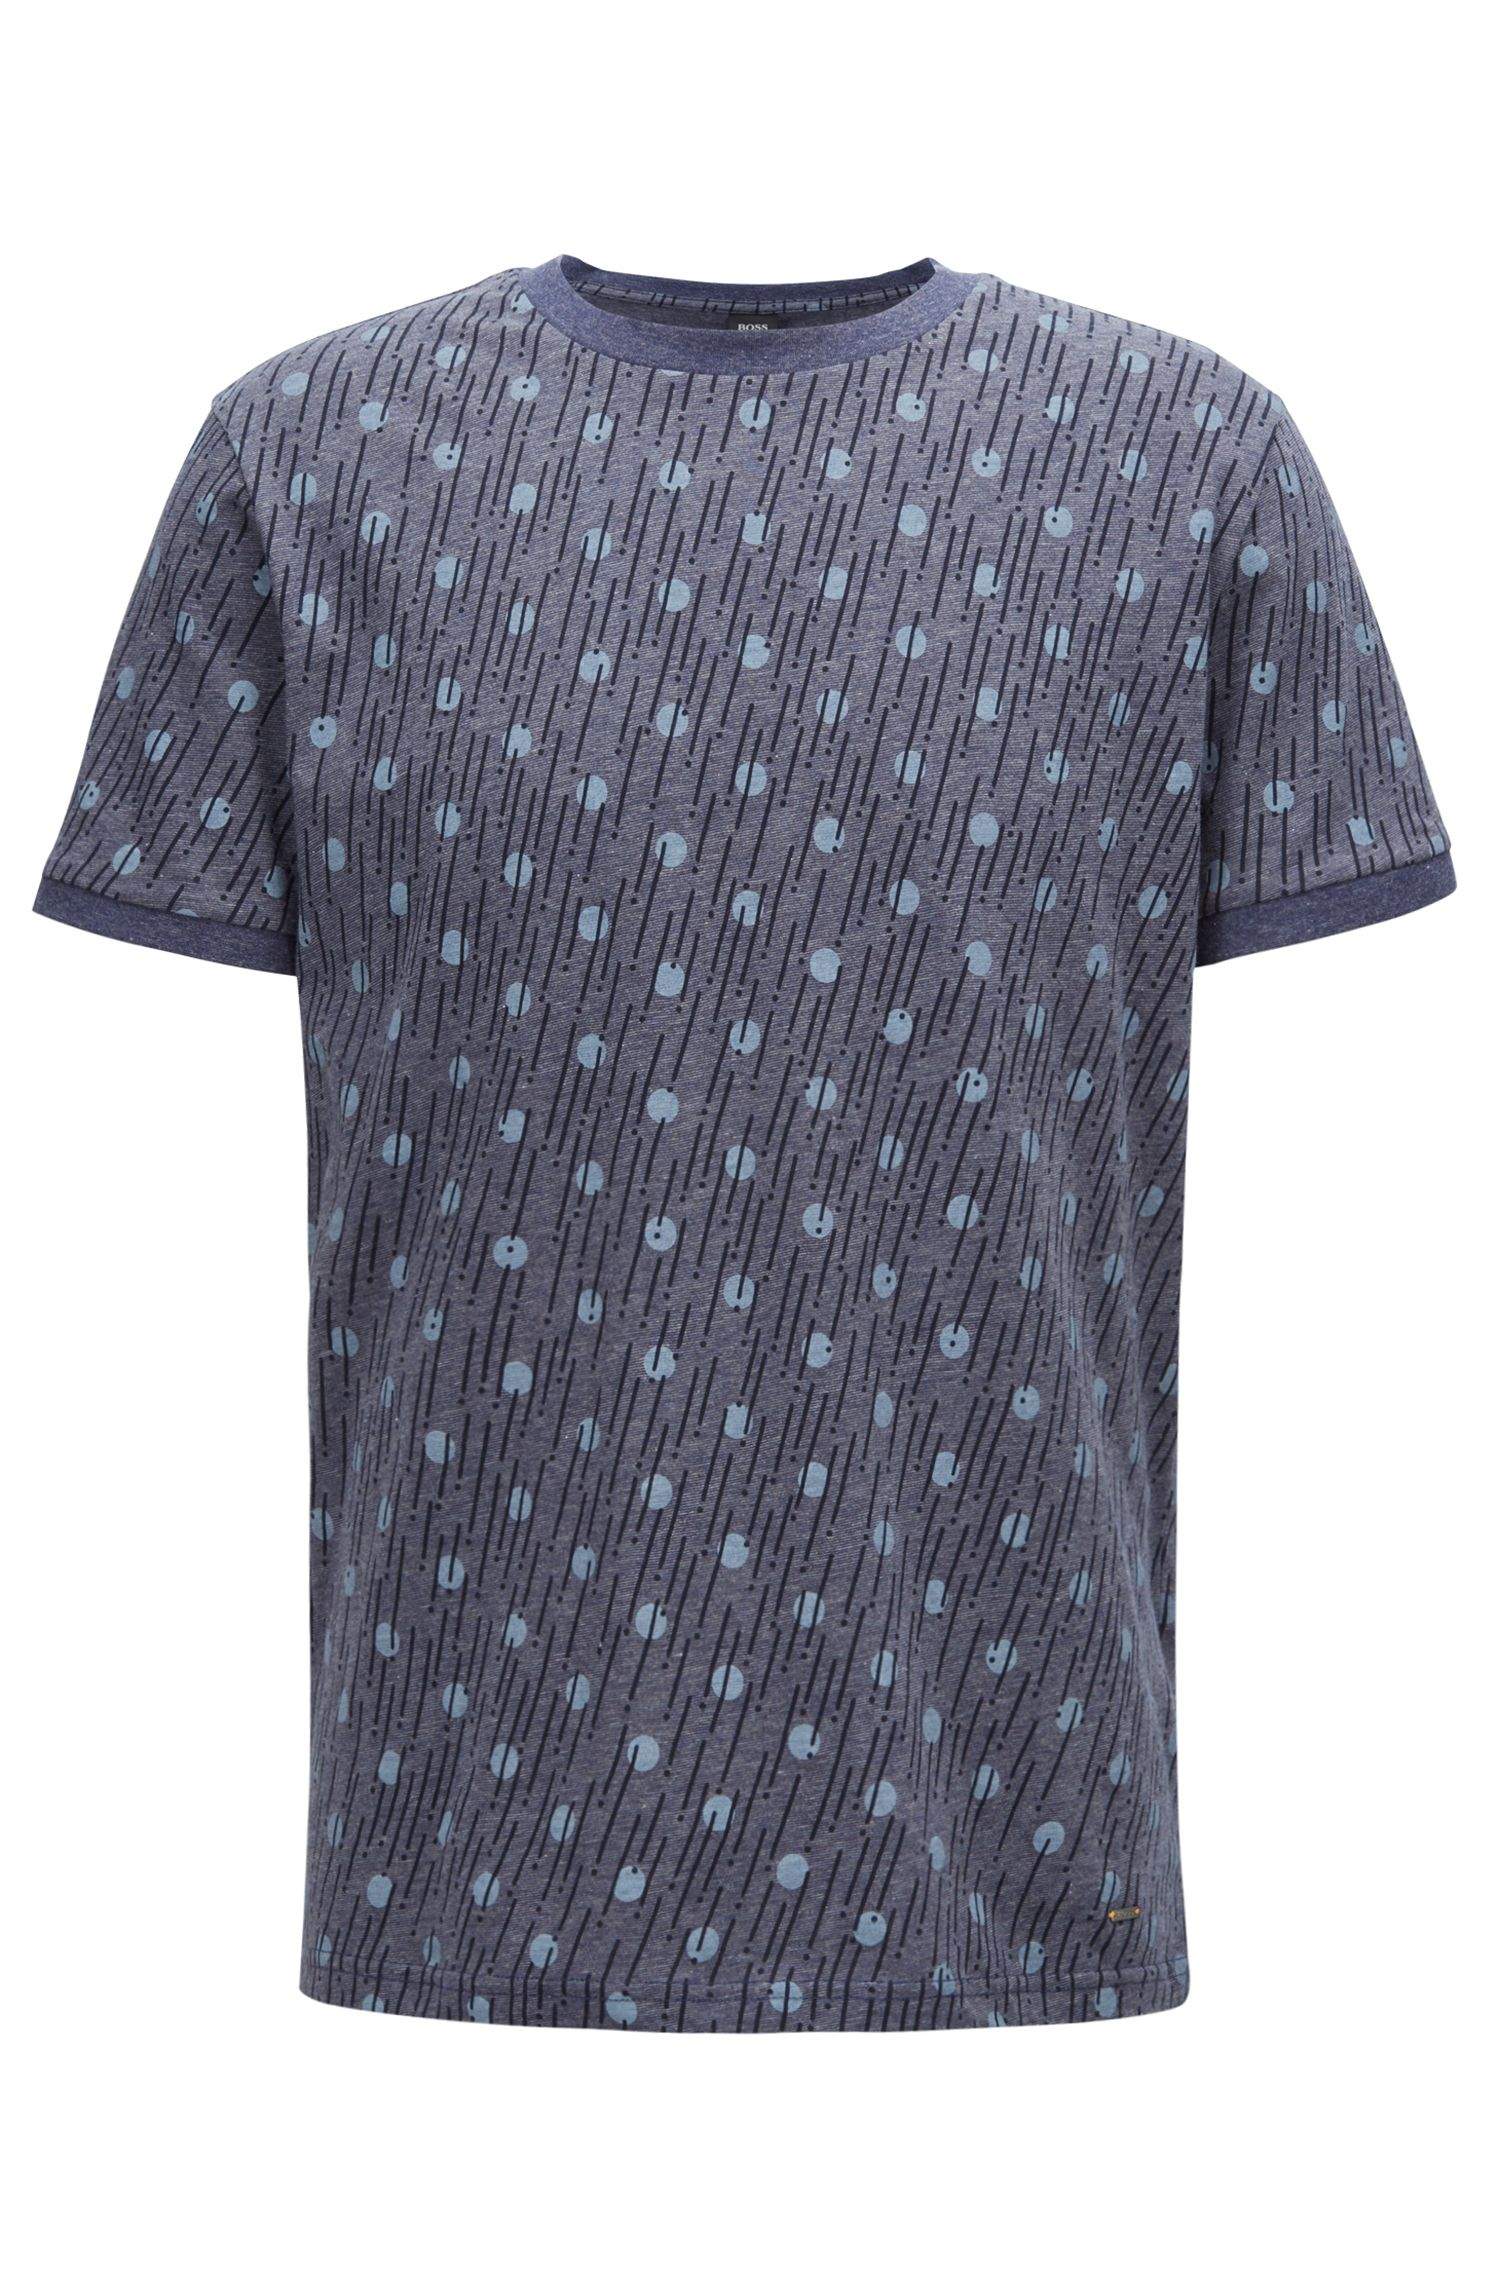 Printed T-shirt in melange single-jersey cotton